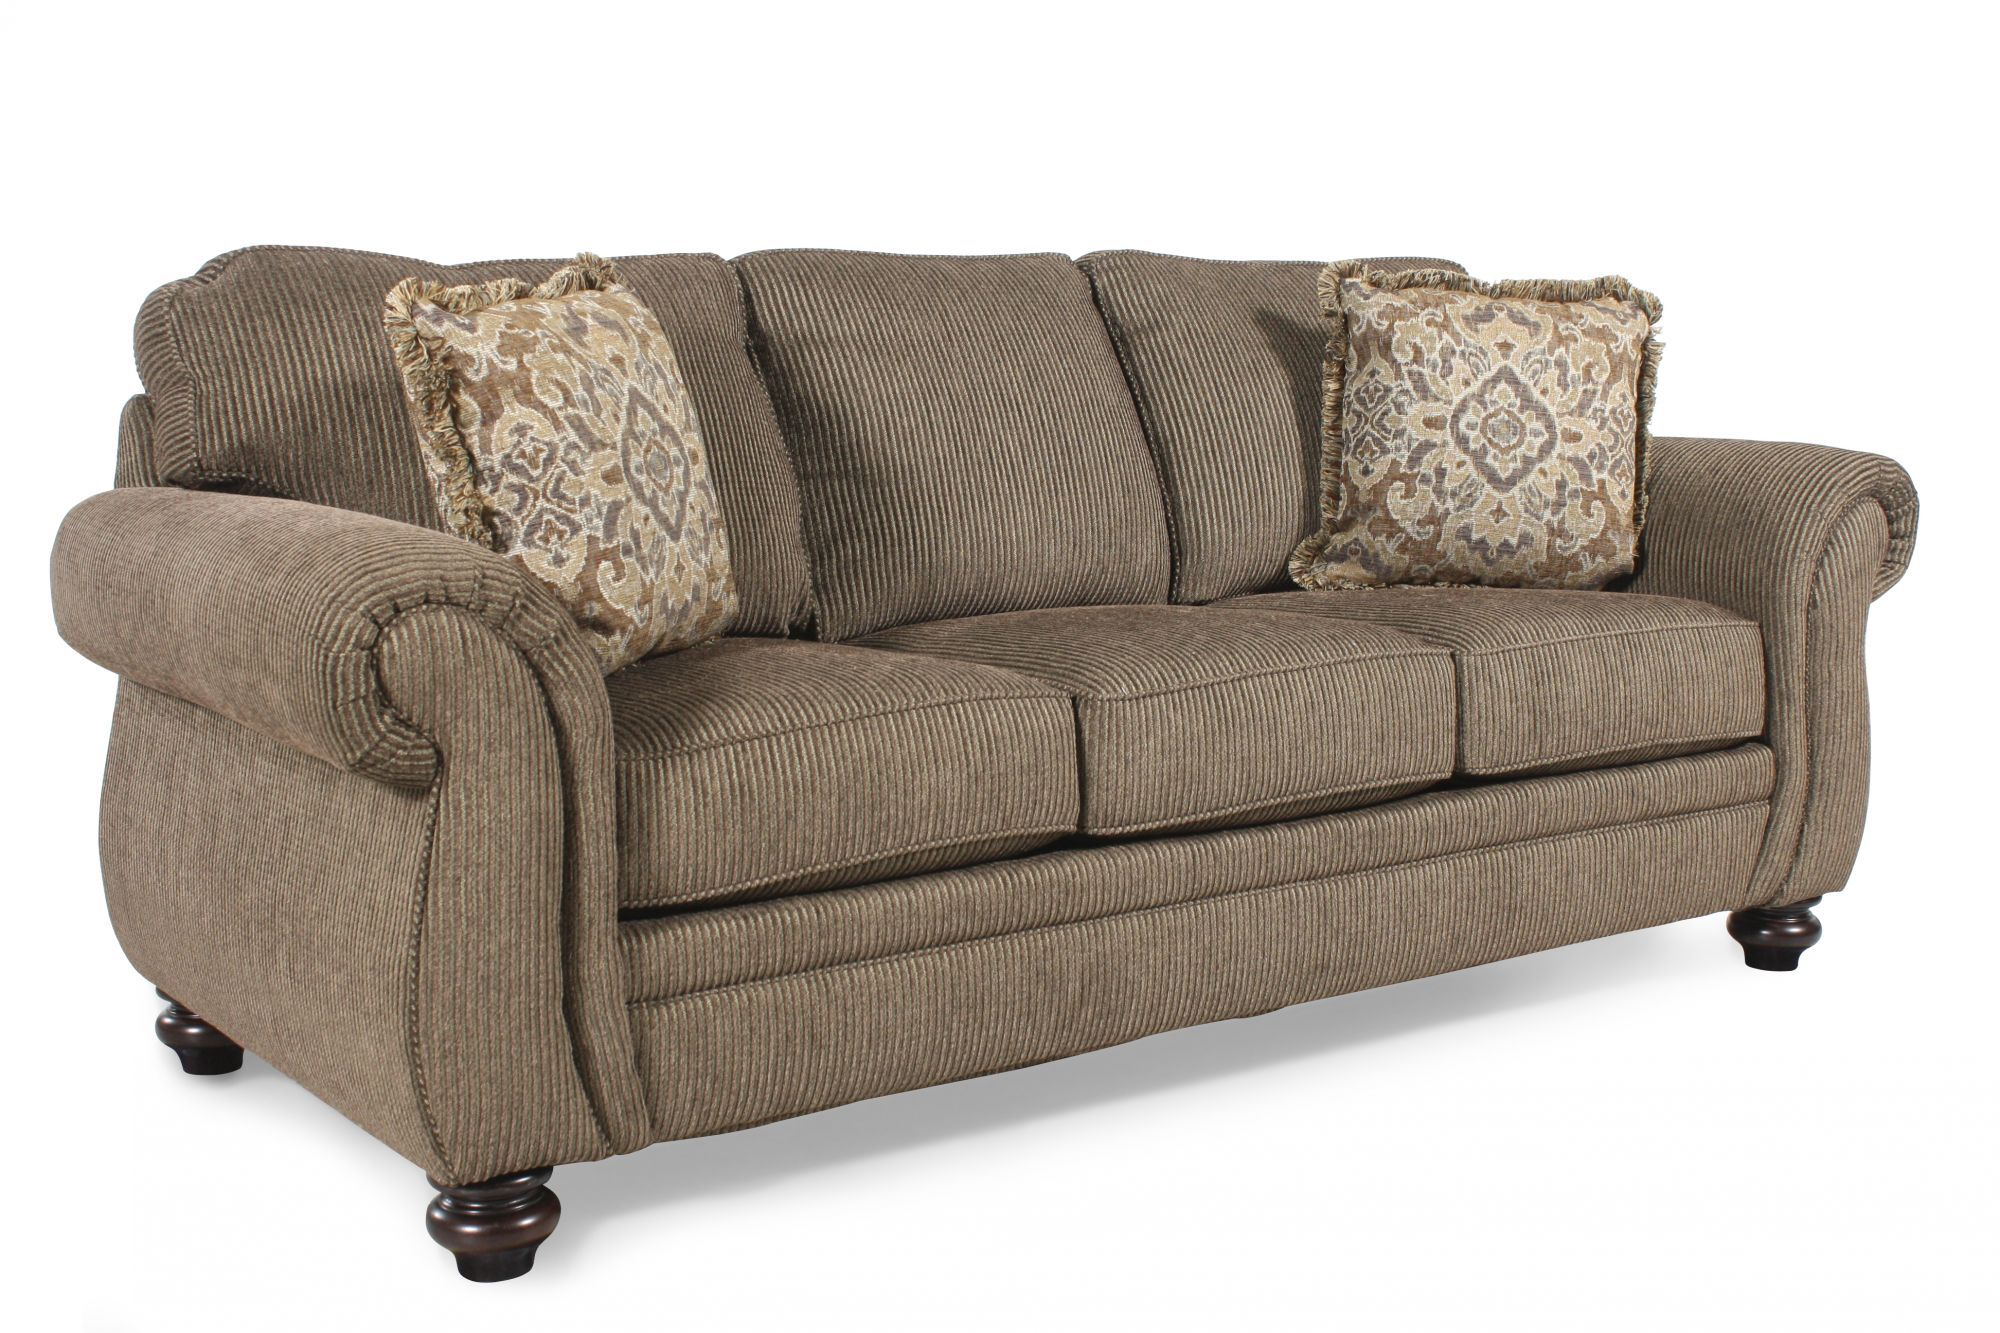 corduroy 89 queen sleeper sofa in teak mathis brothers furniture rh mathisbrothers com broyhill sleeper sofa sale broyhill sleeper sofa reviews